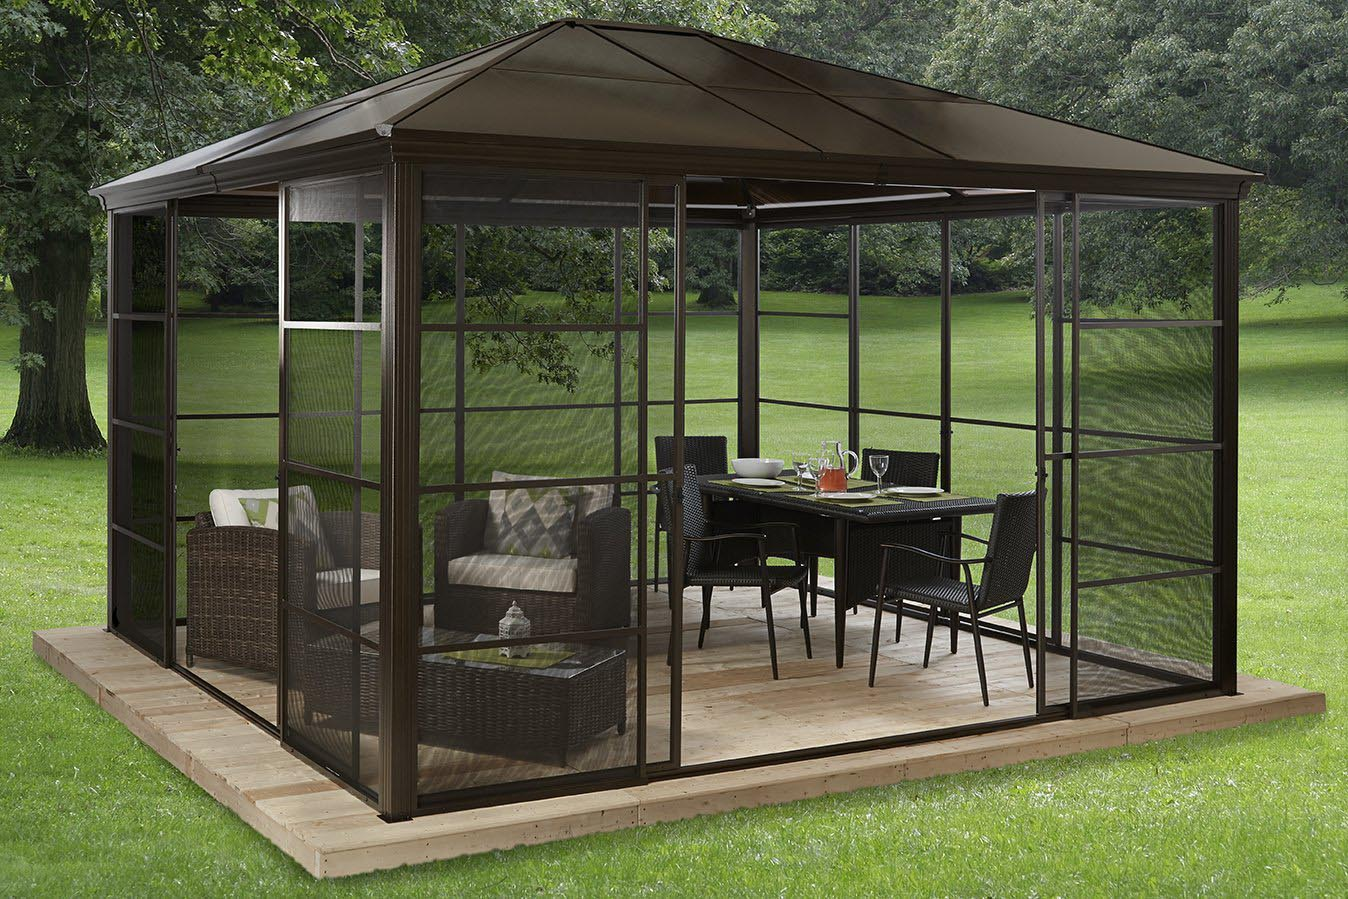 Outdoor metal gazebo screen houses pergola design ideas - Pergola alu toile retractable ...